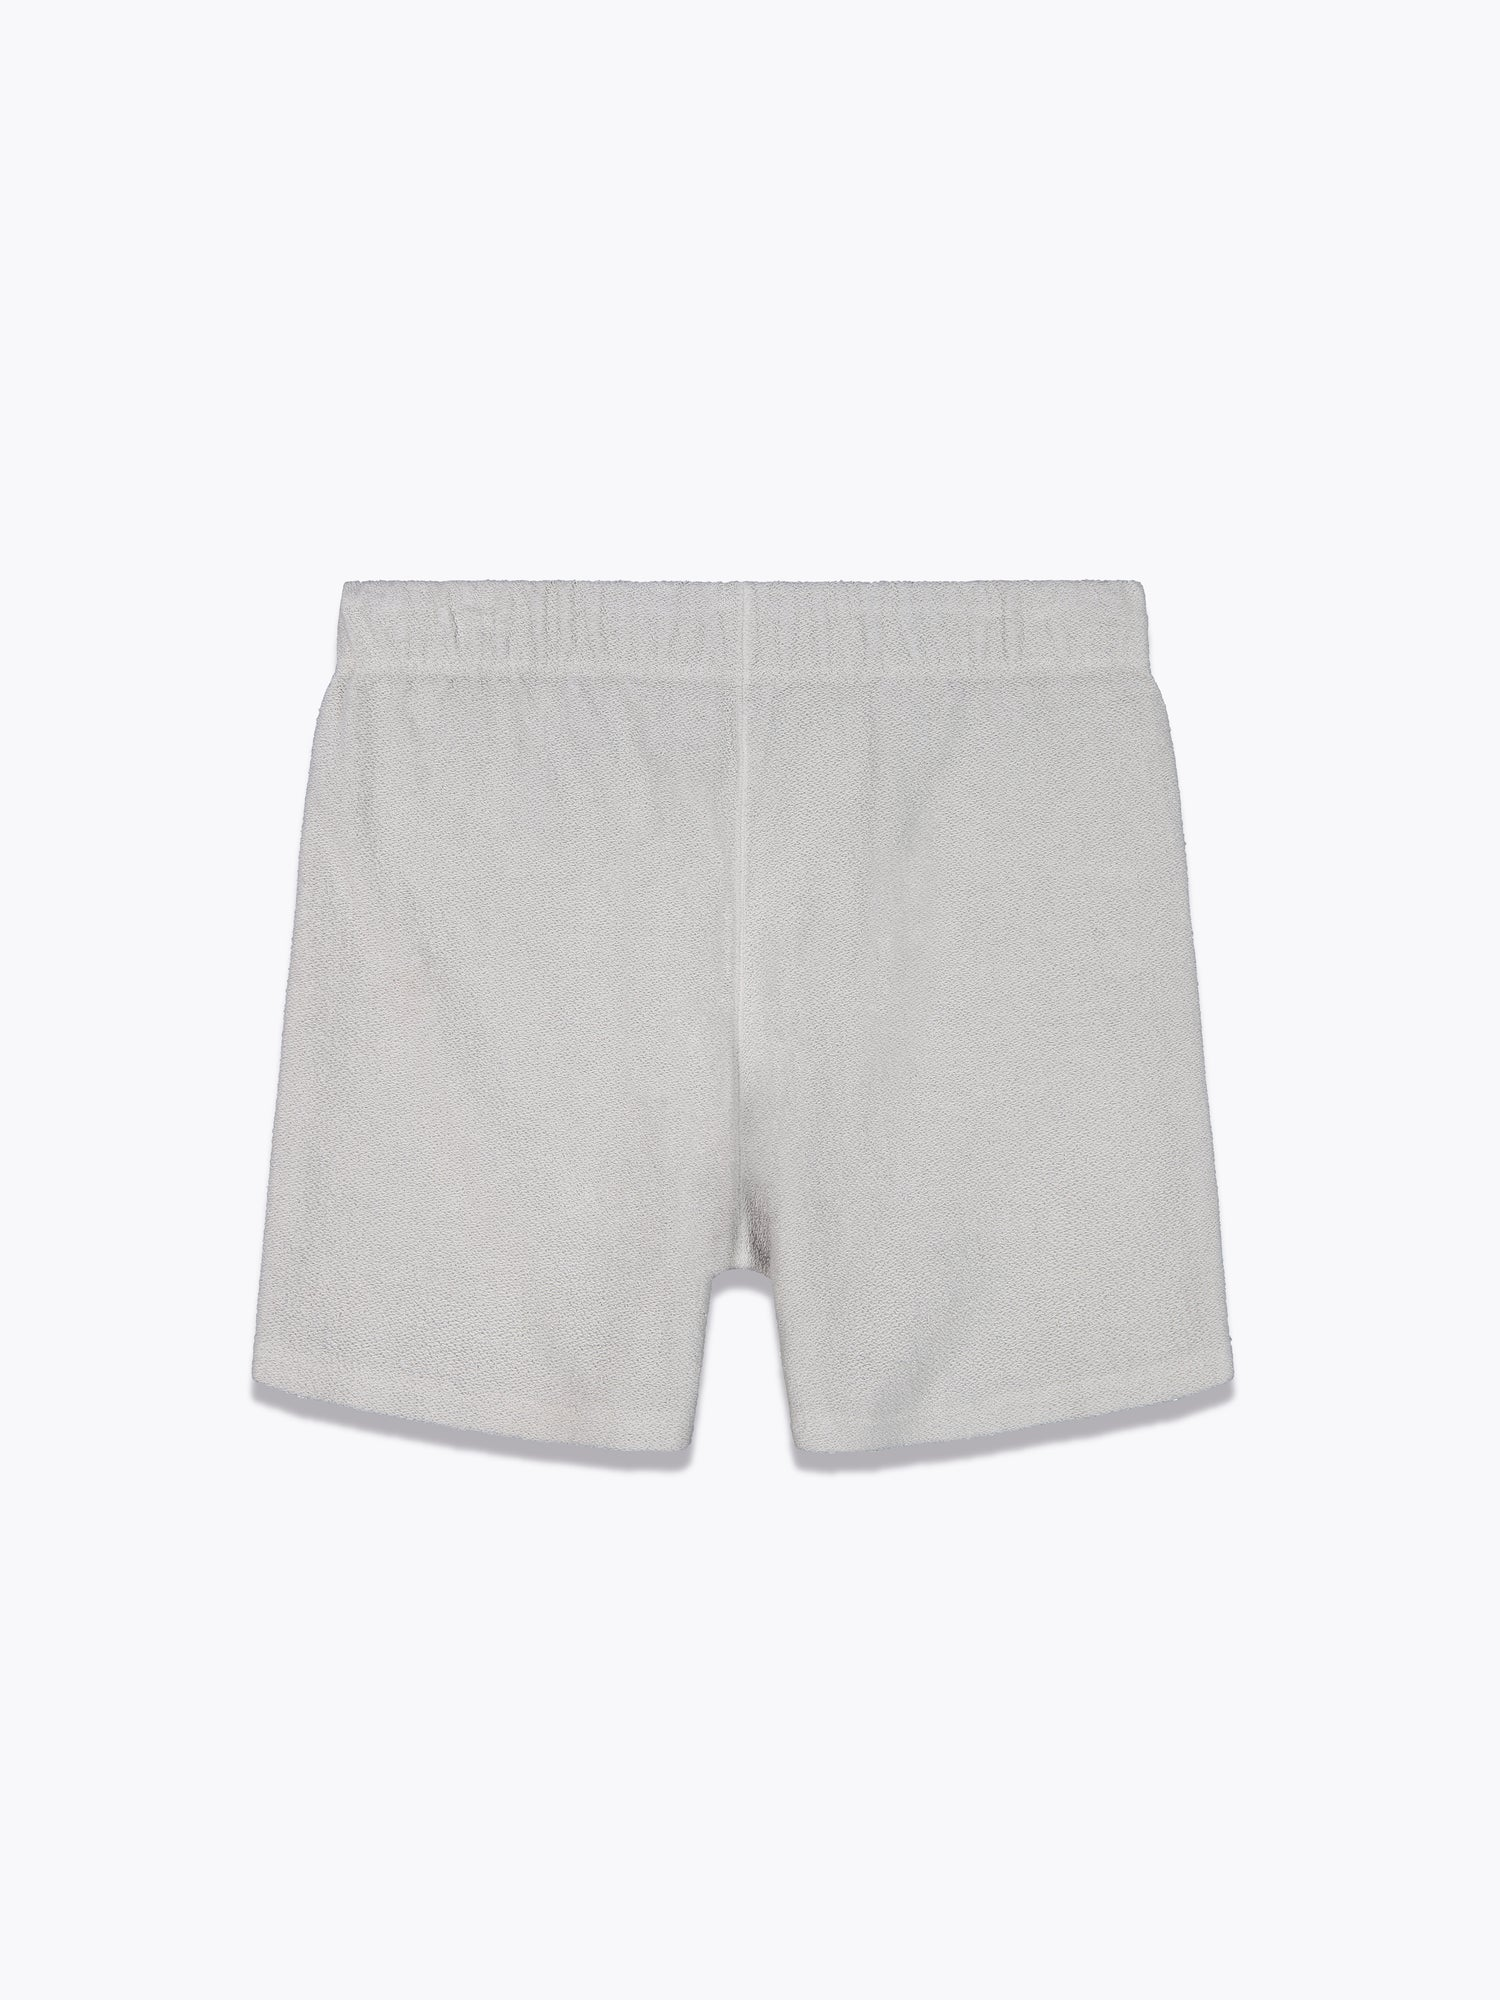 Camp Fit Sweatshorts - Silver (Preorder)